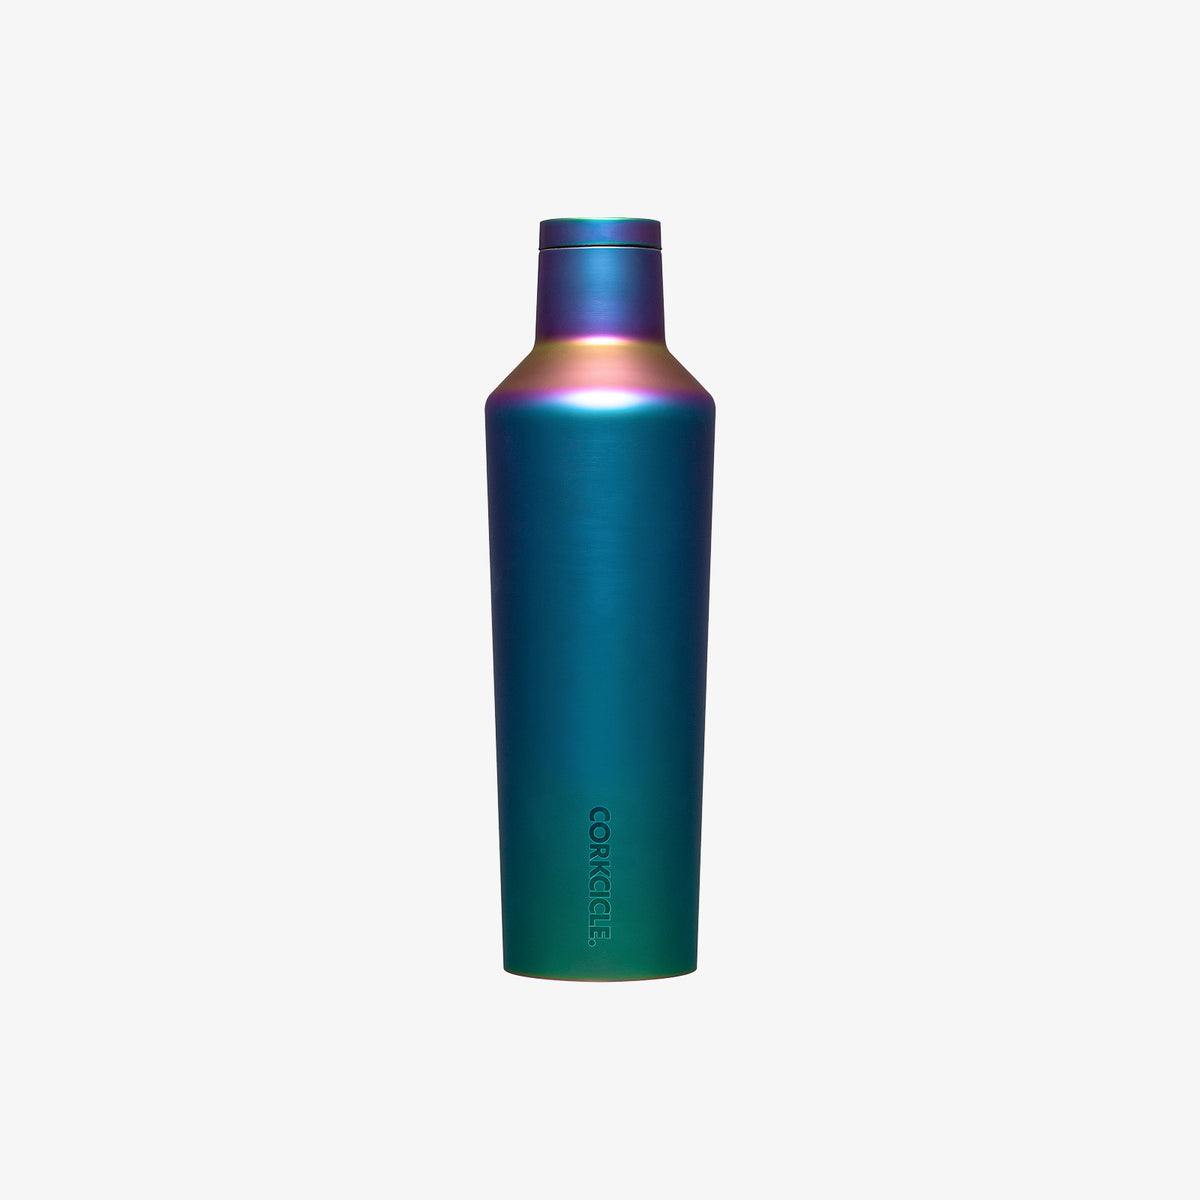 Corkcicle Canteen Bottle 475ml - Dragonfly